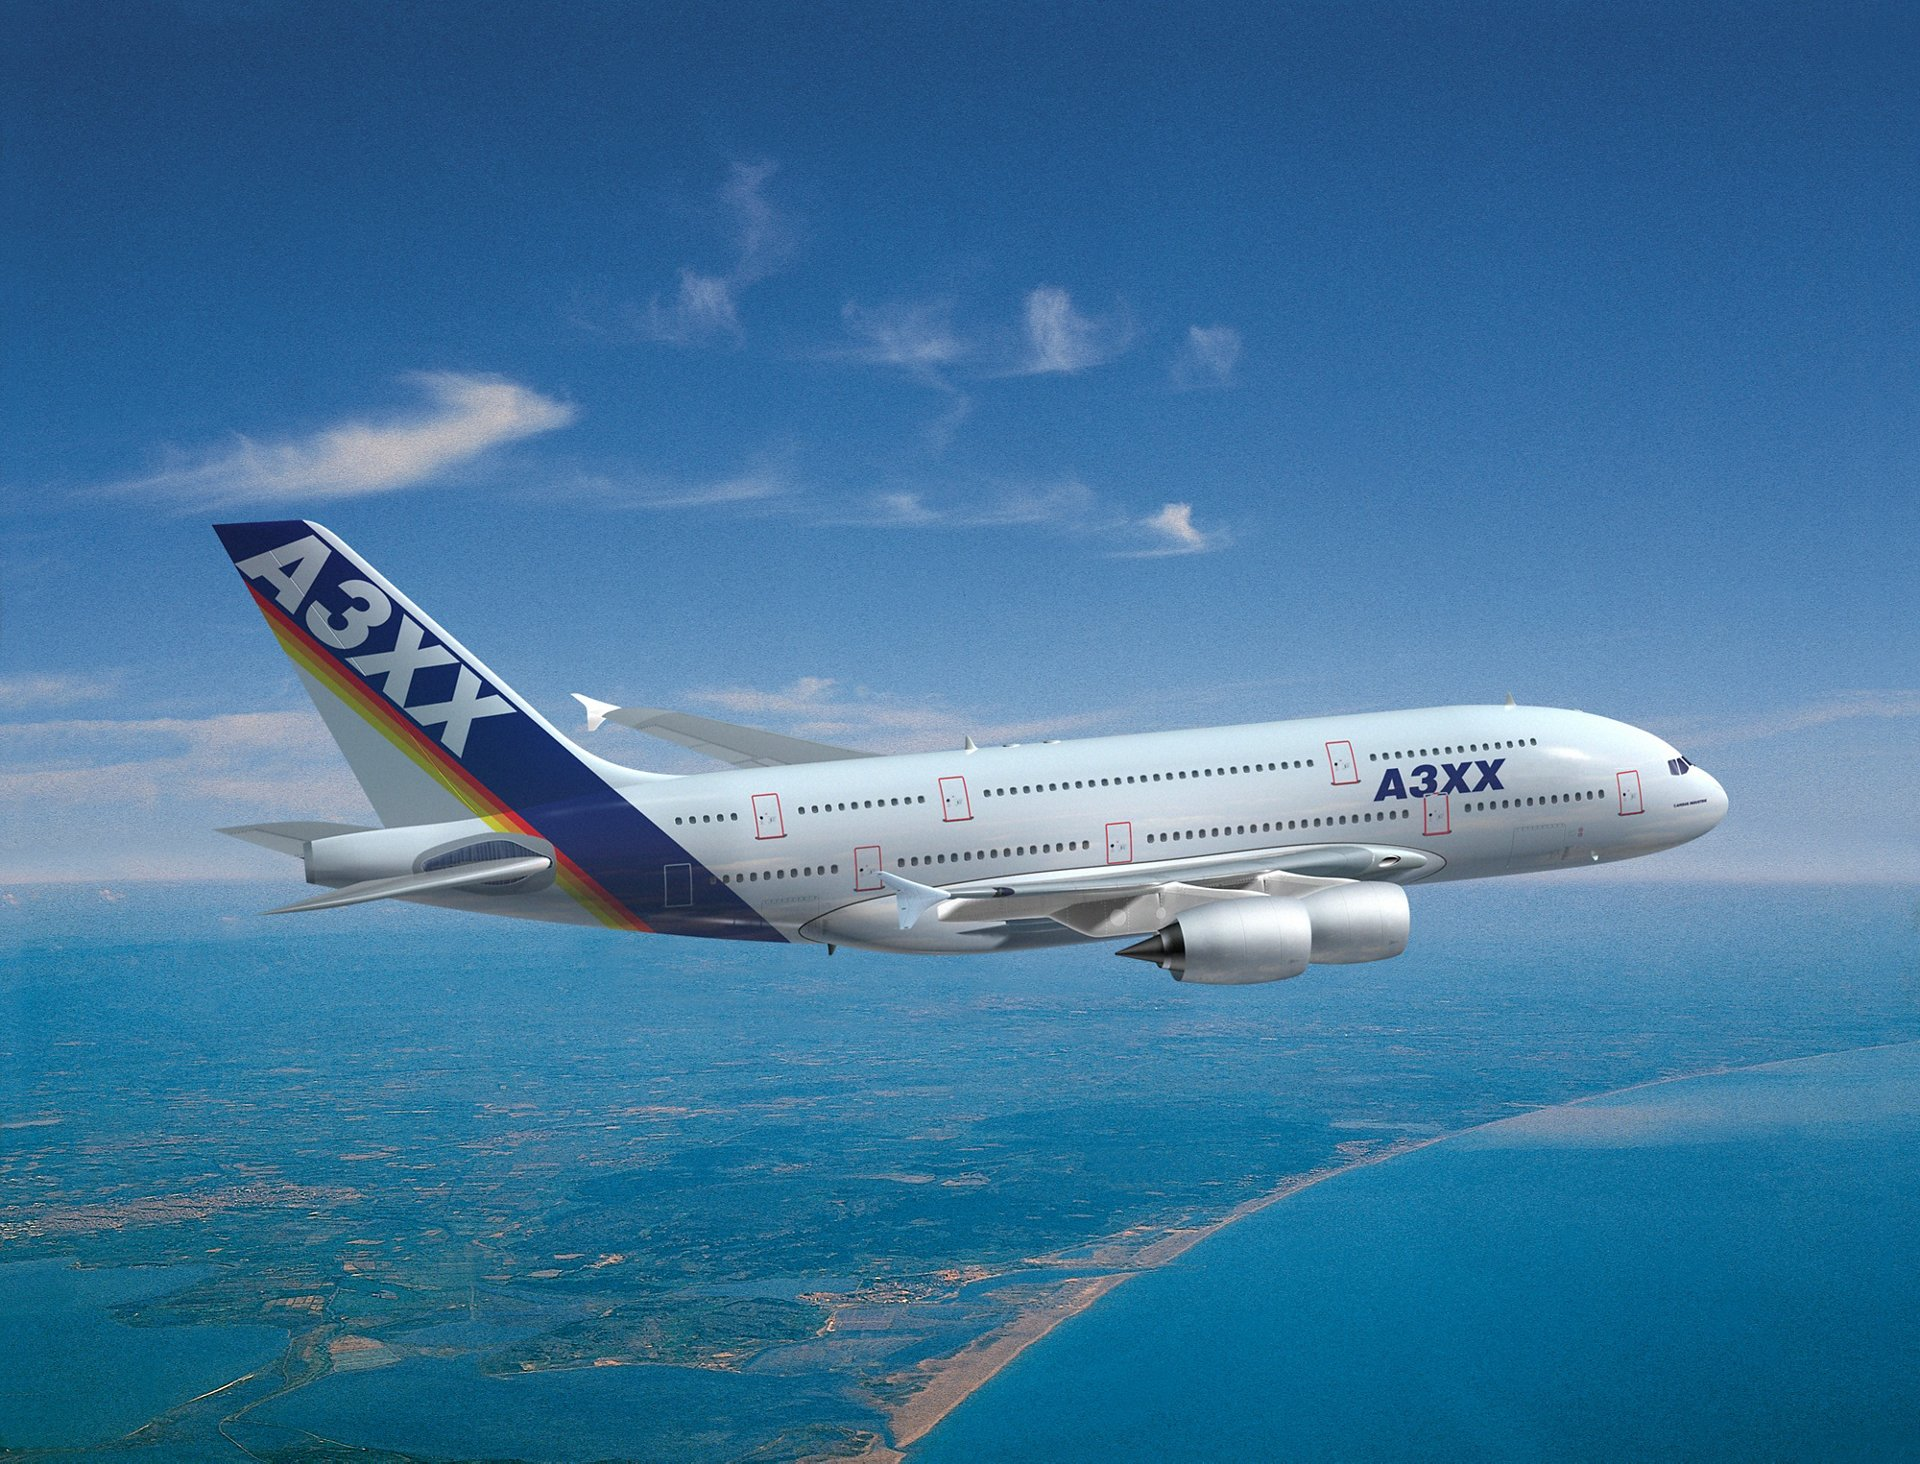 Learn about the history of the iconic double-deck Airbus A380